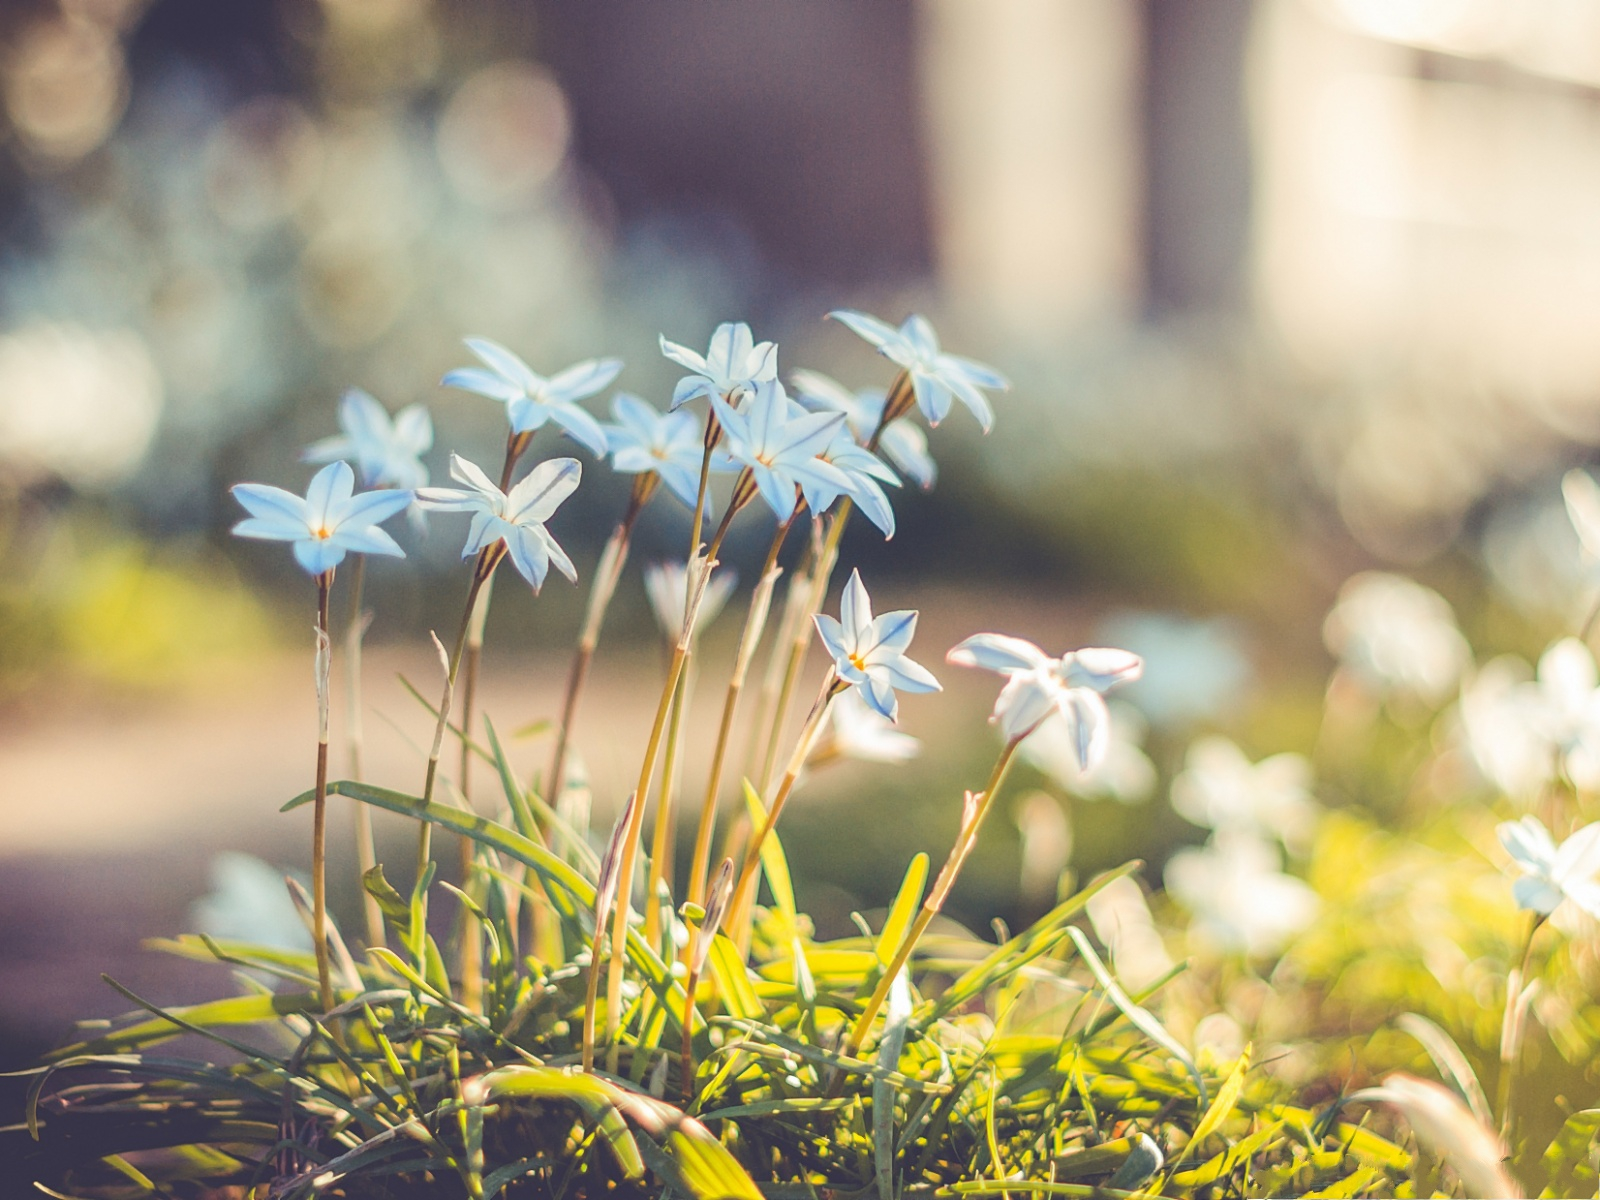 click to free download the wallpaper--Blue Flower Pictures, Little Blooming Flower Under the Sun, Amazing Scene 1600X1200 free wallpaper download